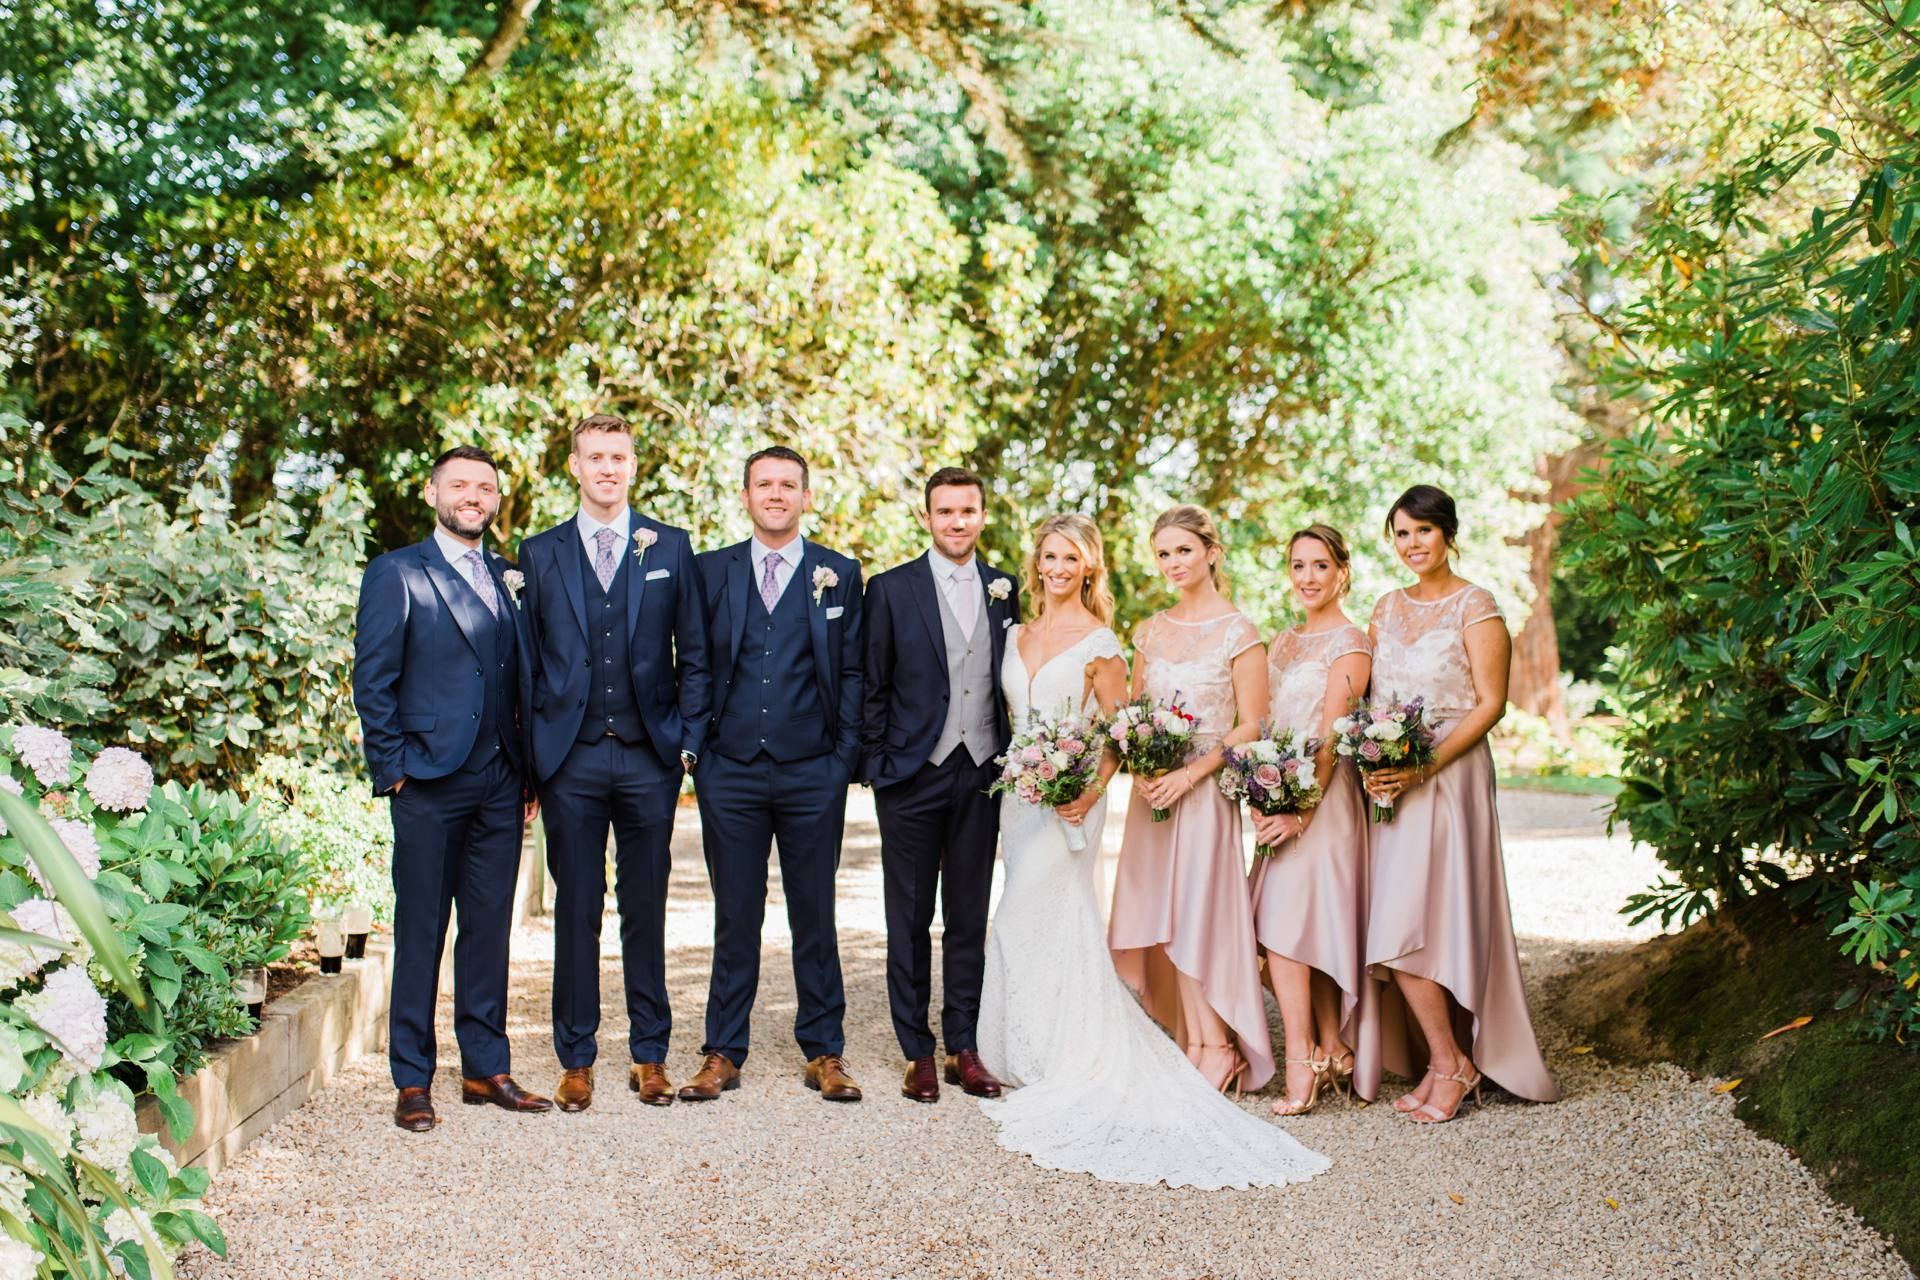 Groomsmen and bridesmaids standing together